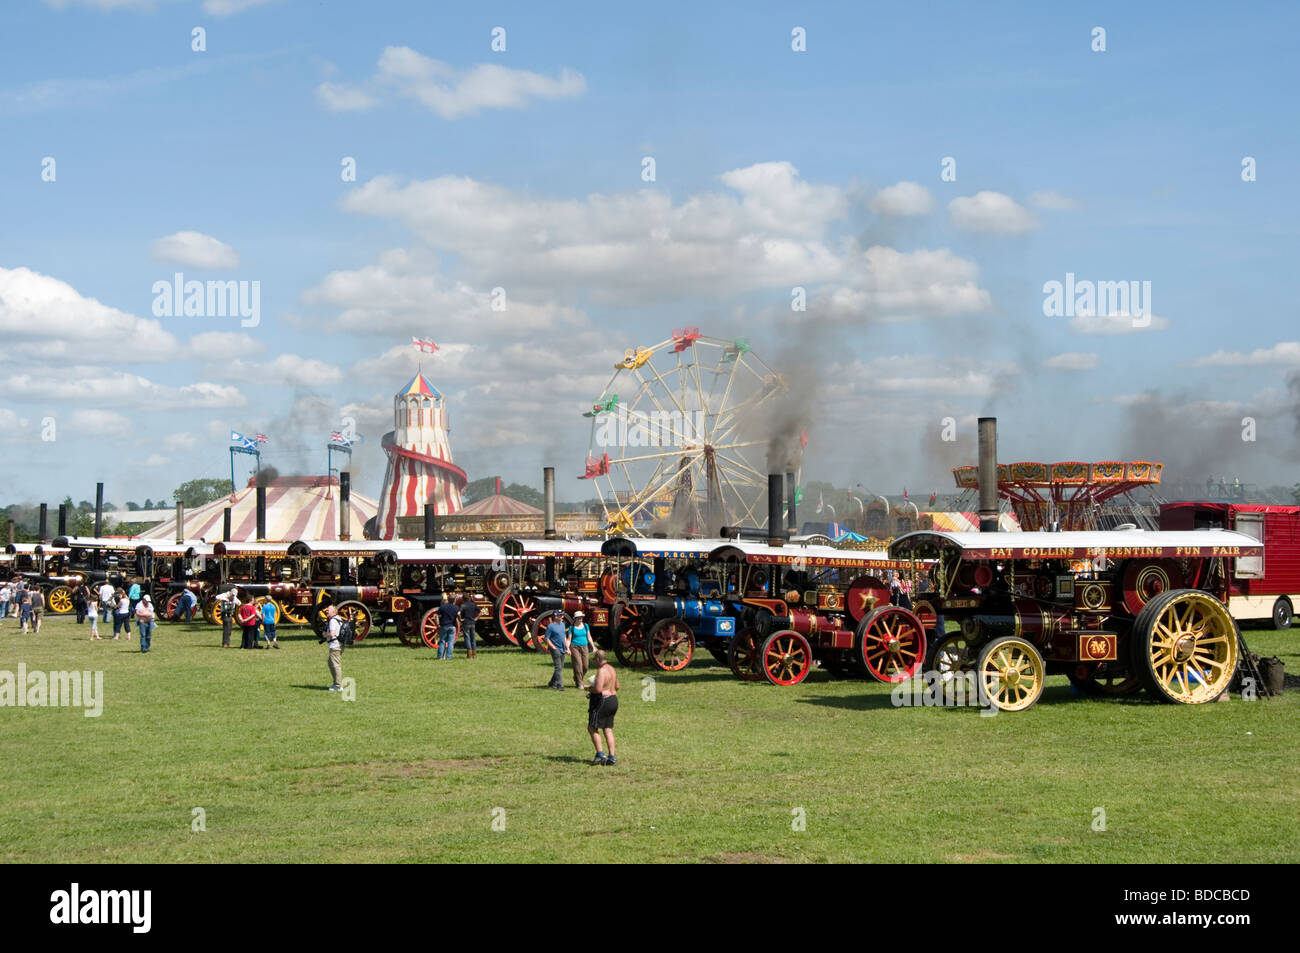 traction engine show engines steam power powered fairground fairgrounds fair fairs ground grounds traditional - Stock Image